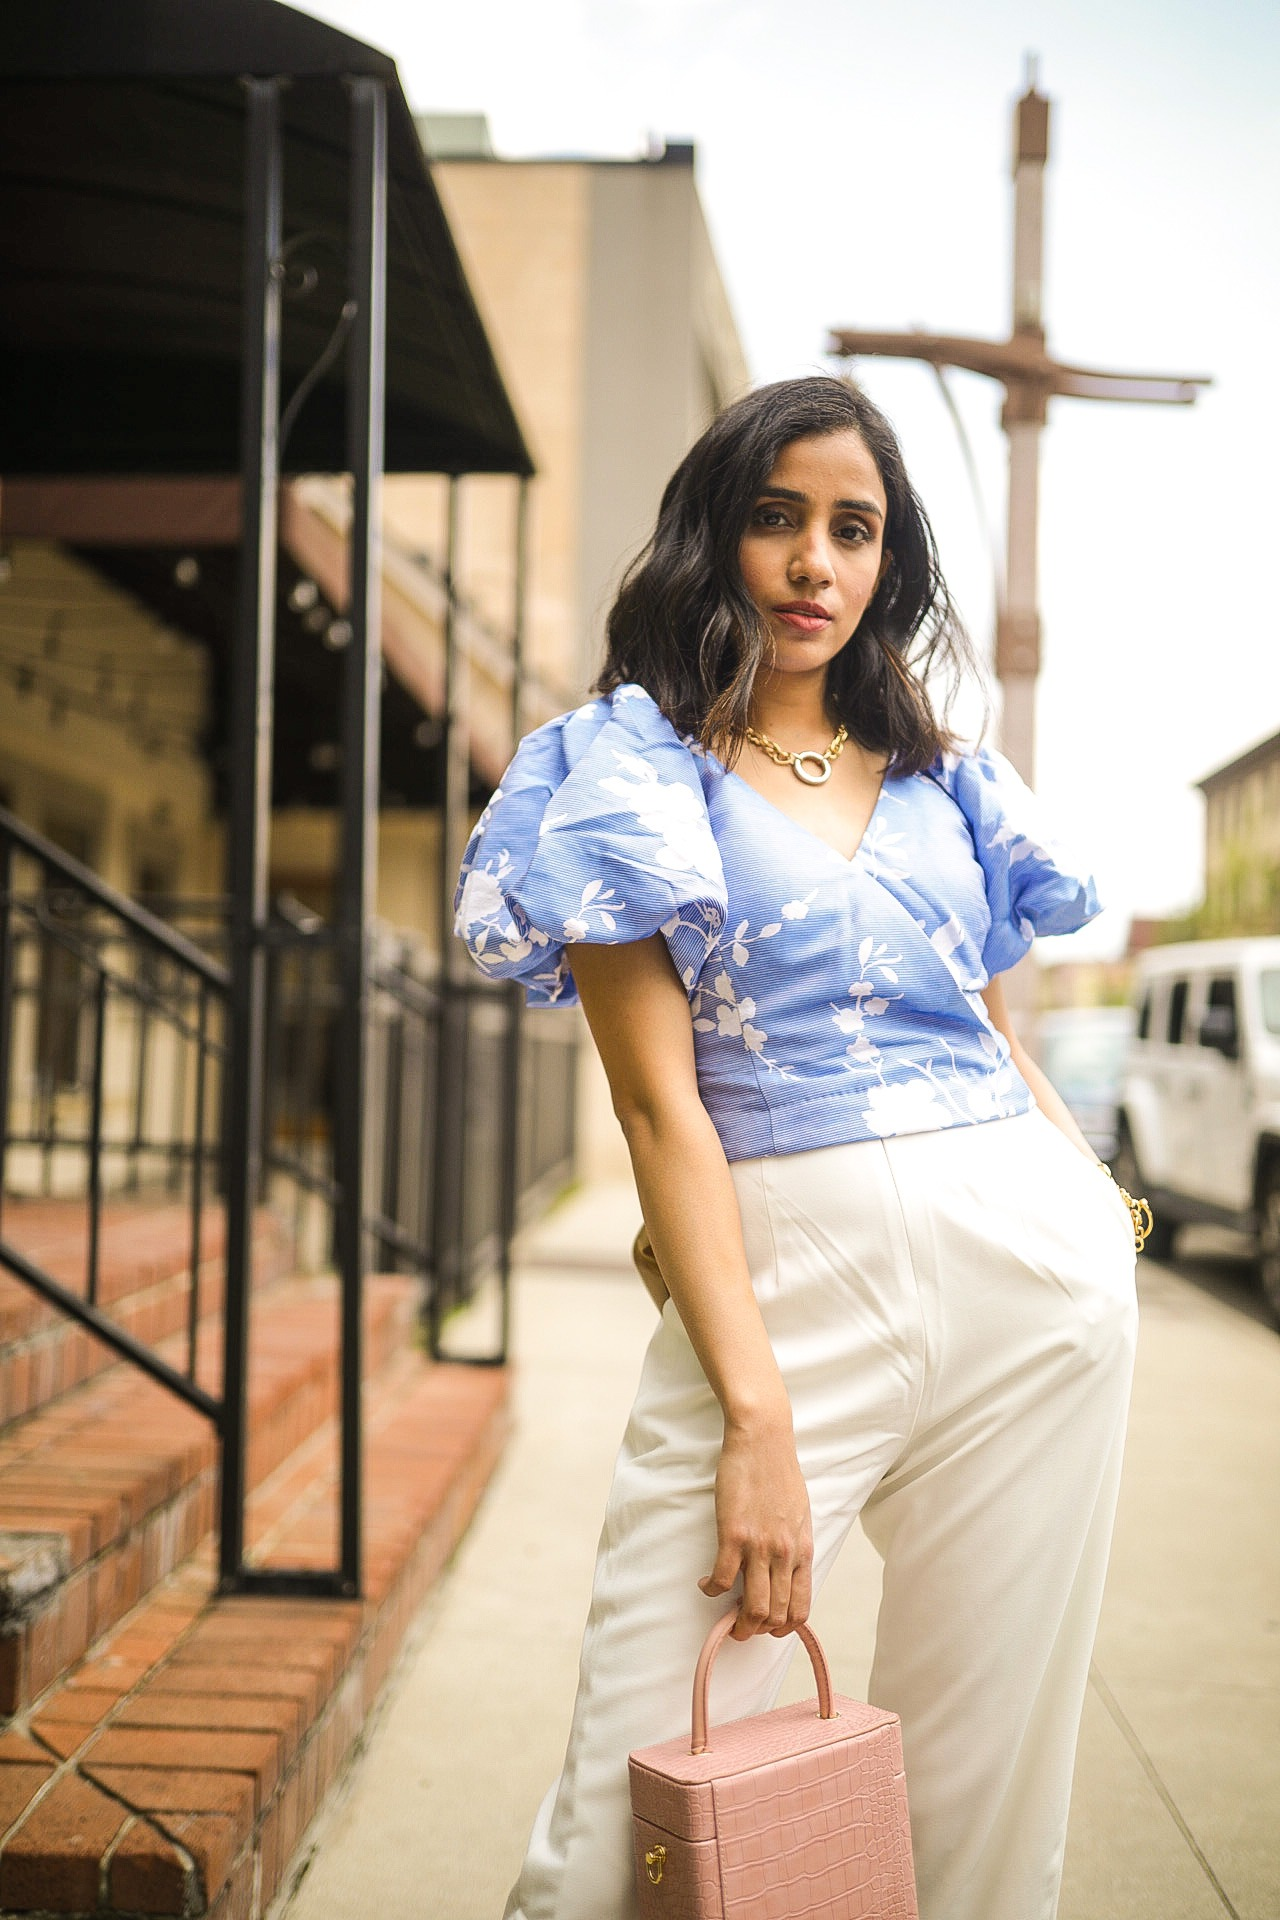 How to Wear Puff Sleeves in Fall 1 puff sleeve blouse faiza inam how to style tips 101 4